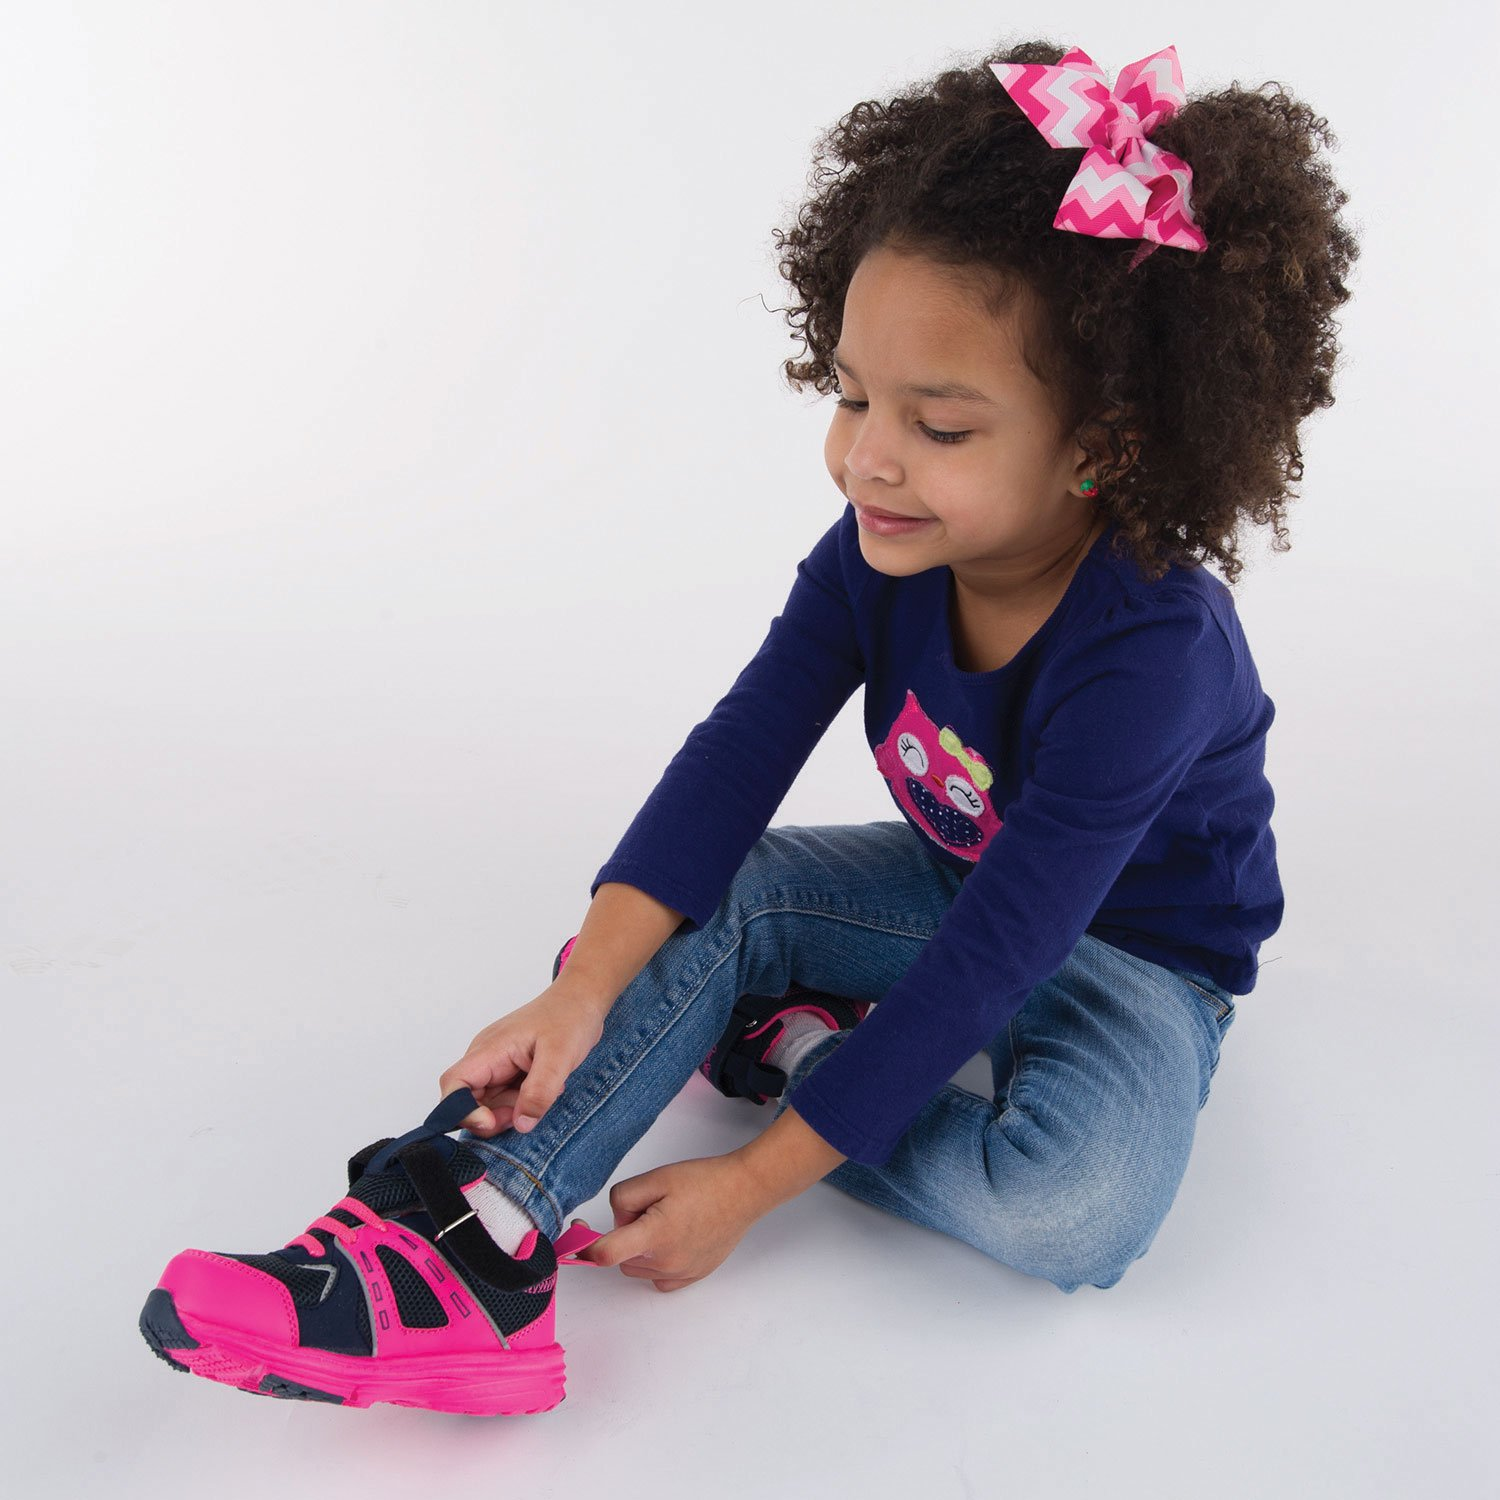 One Step Ahead Easy-On Athletic Shoes for Kids Sizes 6-13